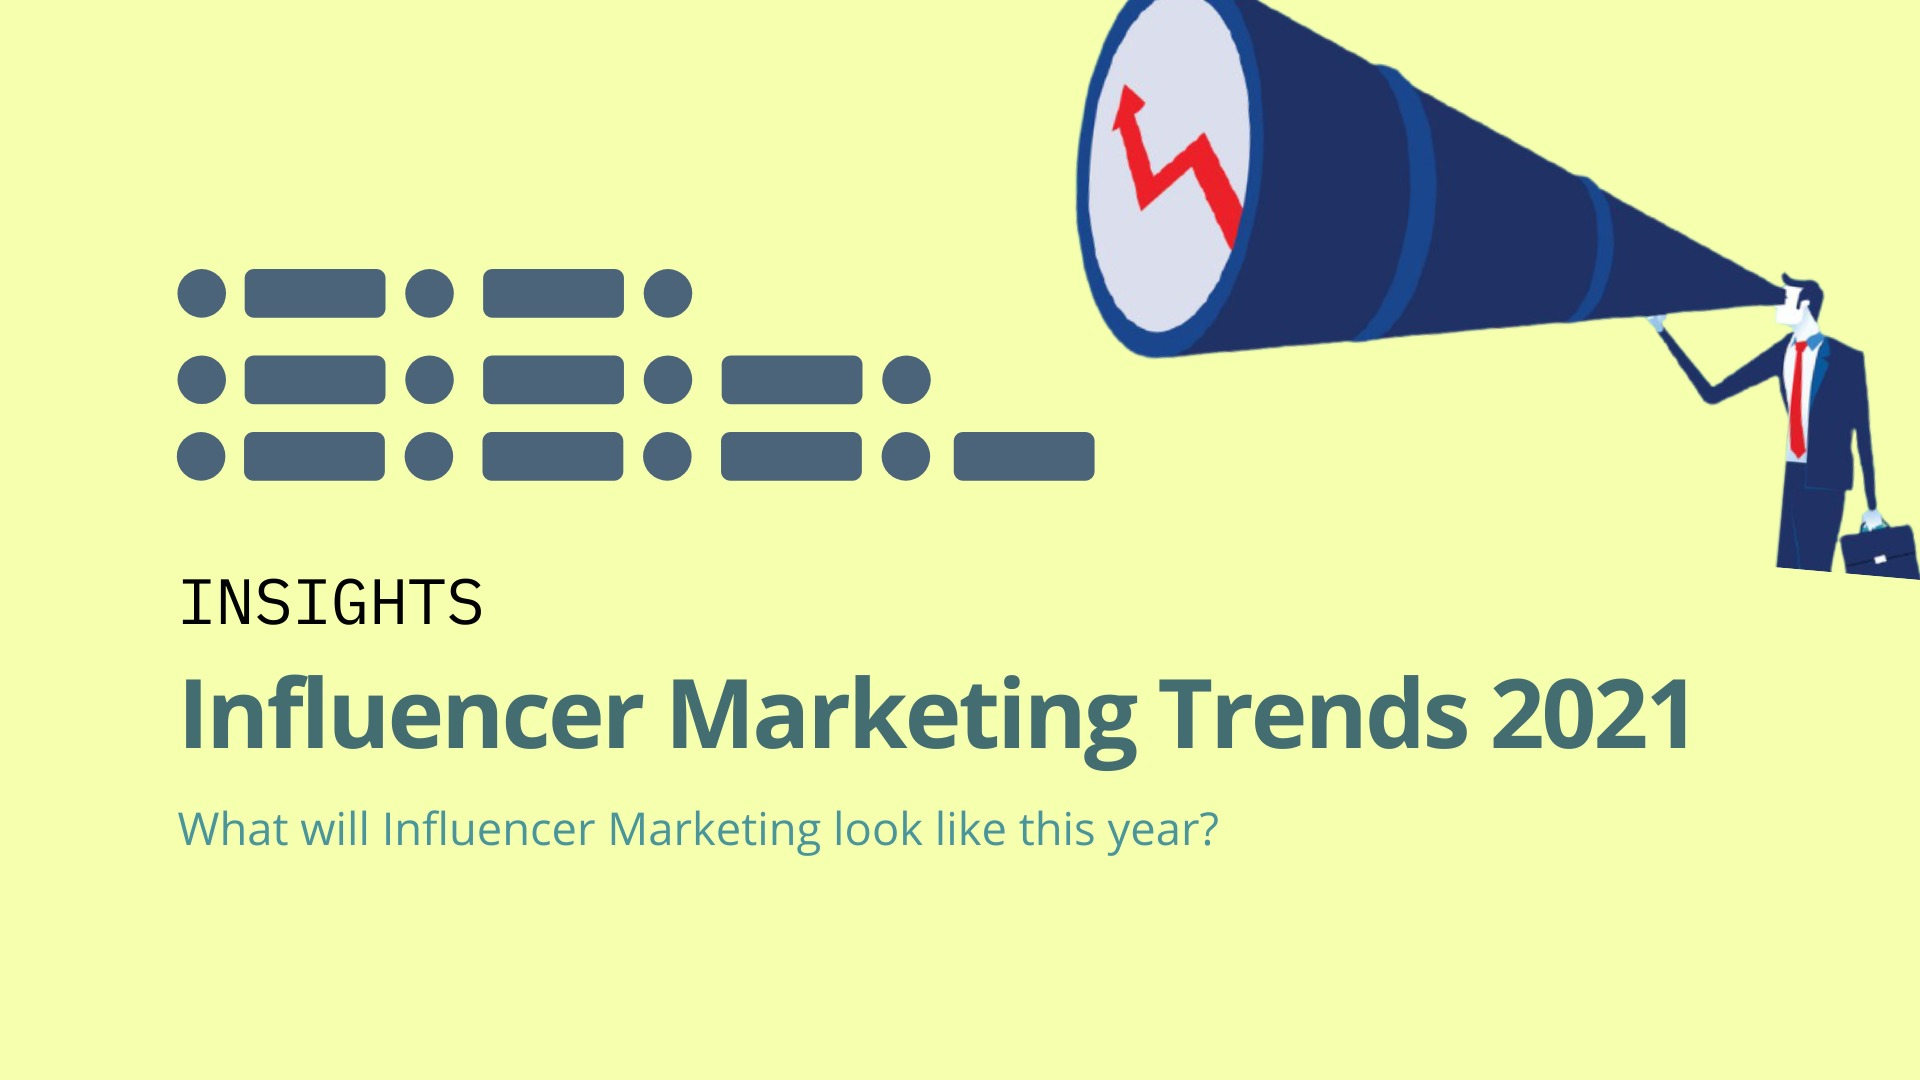 Influencer Marketing Trends 2021 image